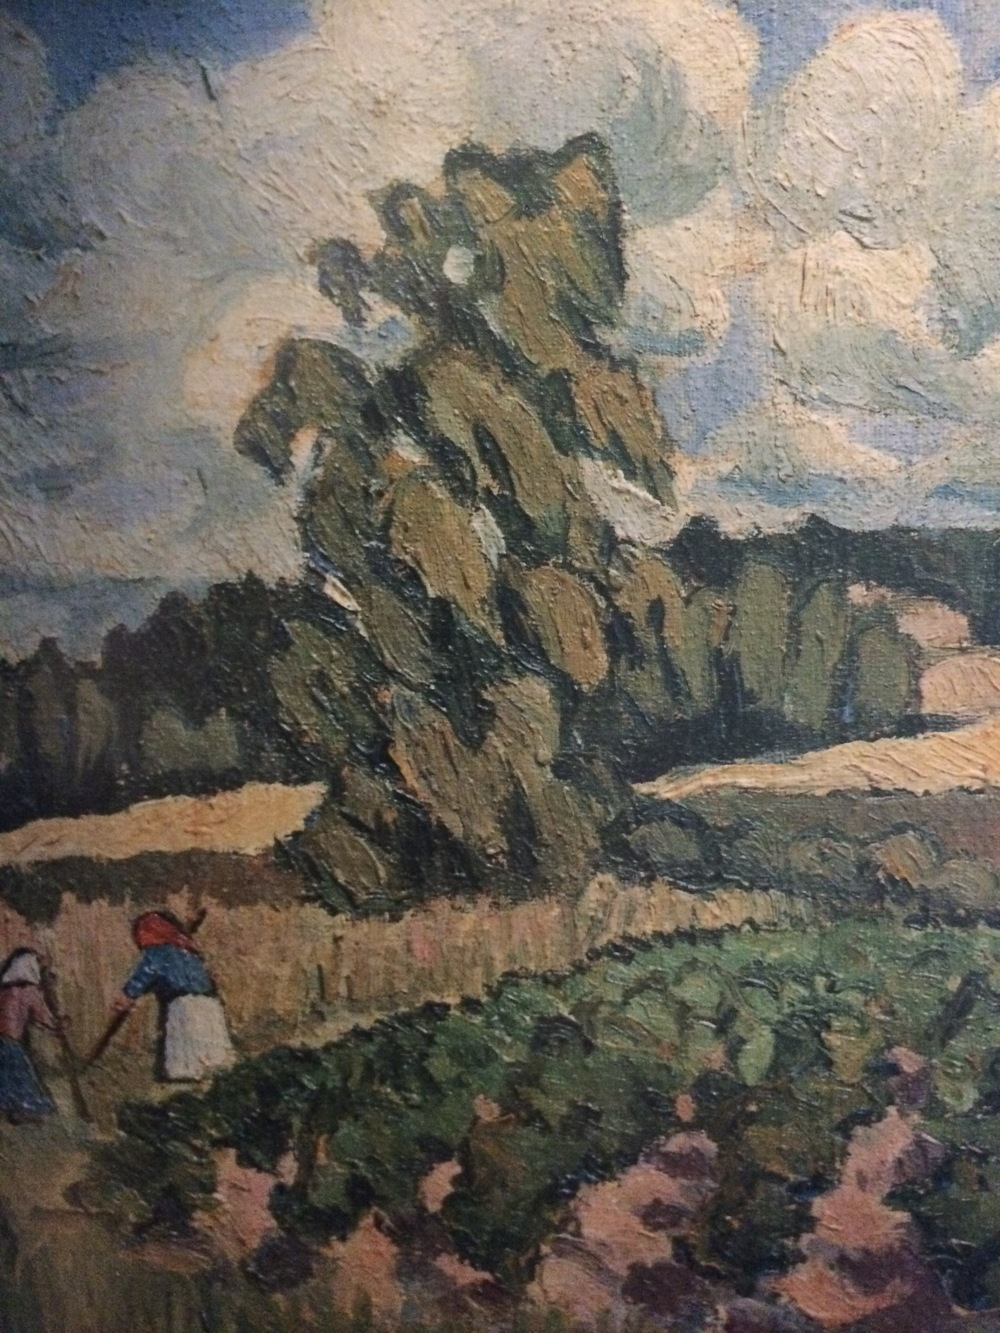 Landscape with Female Figures (detail), 1908, oil on canvas, 13 6/8 x 17 1/8 inches. Private Collection, Moscow.